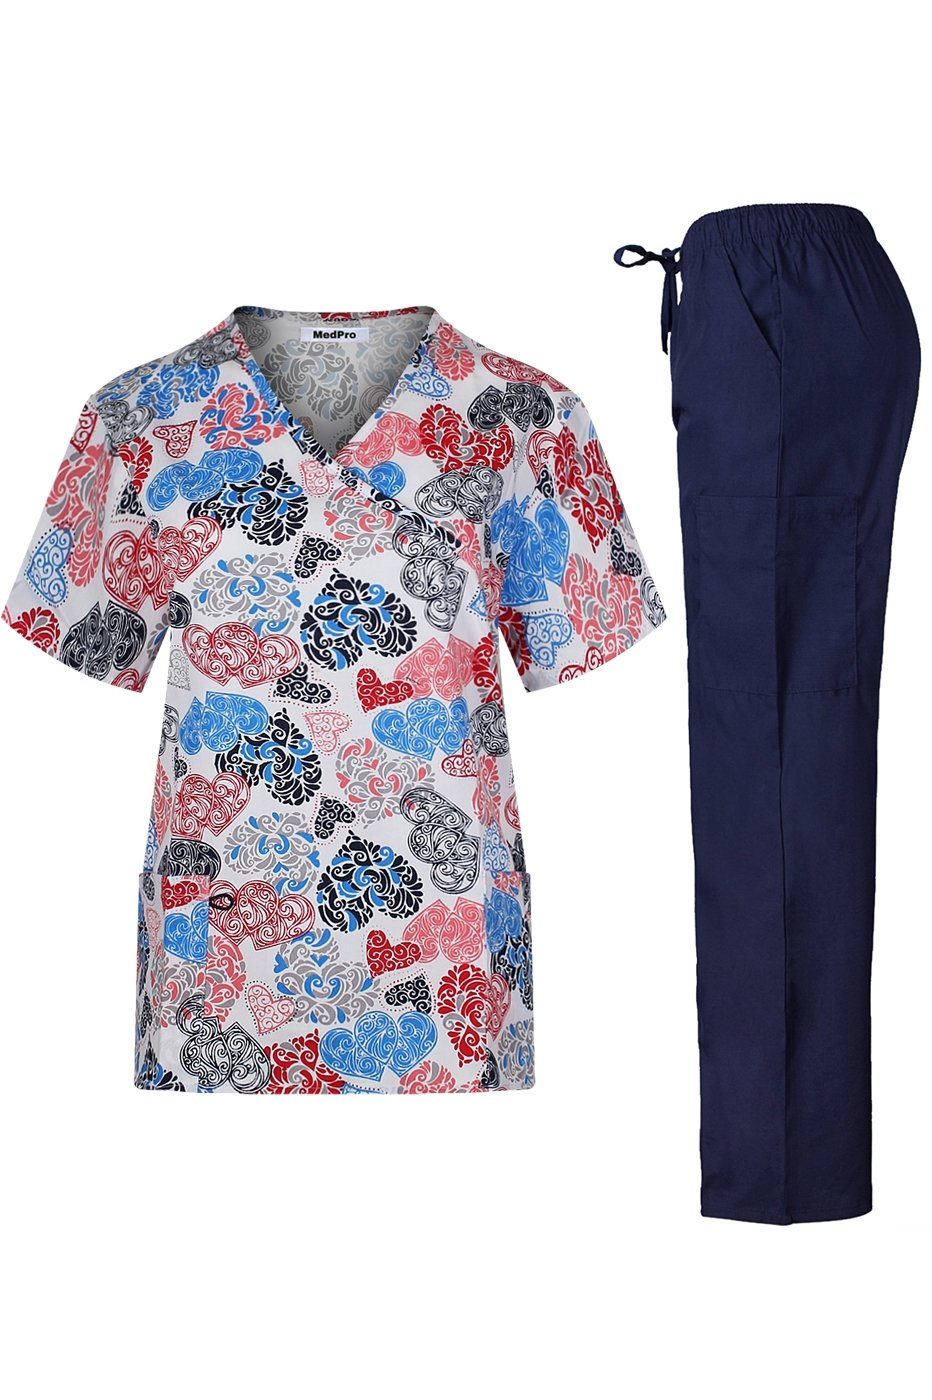 MedPro Women's Medical Scrub Set with Printed Wrap Top and Cargo Pants White Blue L(9003HR-47)